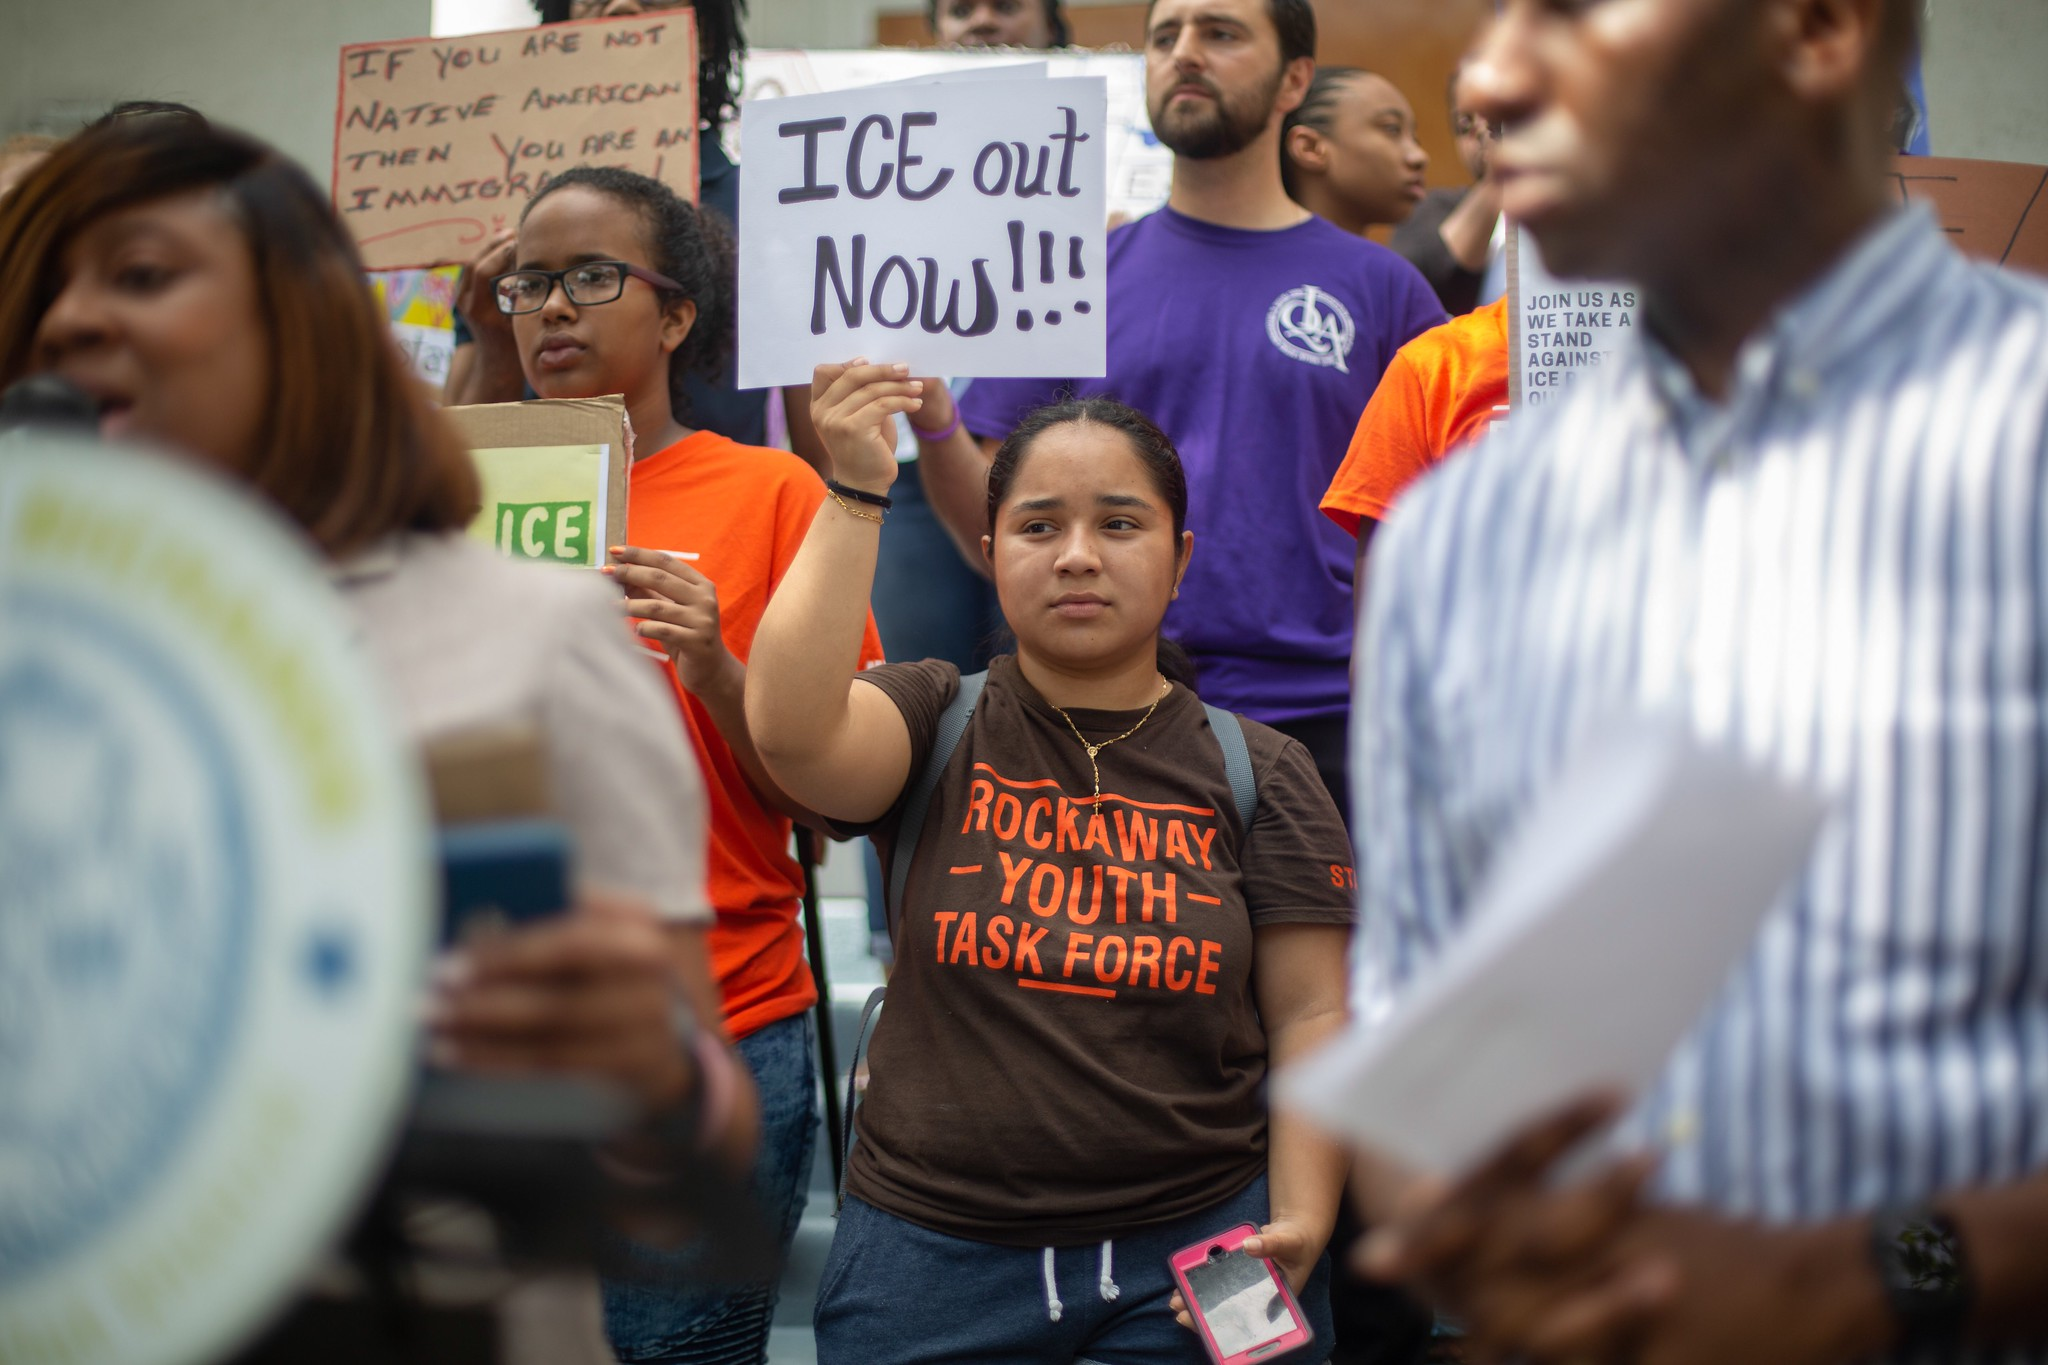 Rockaway Youth Task Force organizer Andrea Colon holds a sign denouncing immigration raids at a rally in Far Rockaway last week.  Eagle  photo by Rachel Vick.